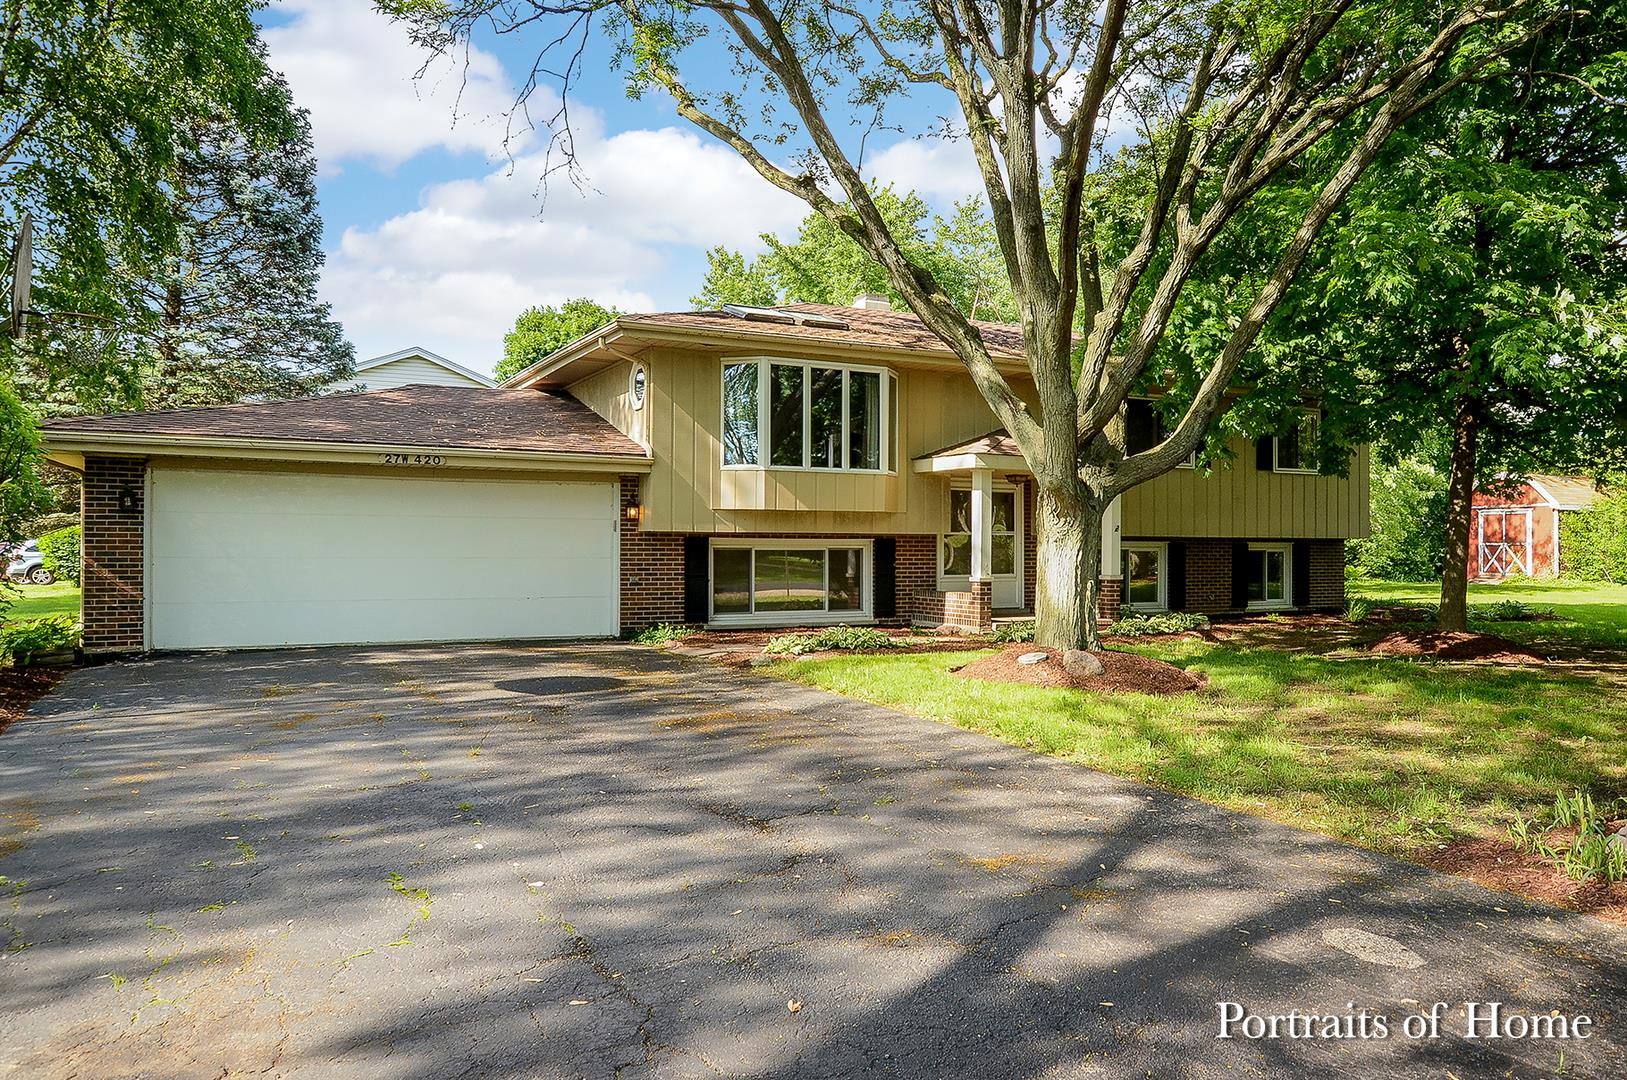 27W420 Timber Lane, West Chicago, IL 60185 - #: 10918098